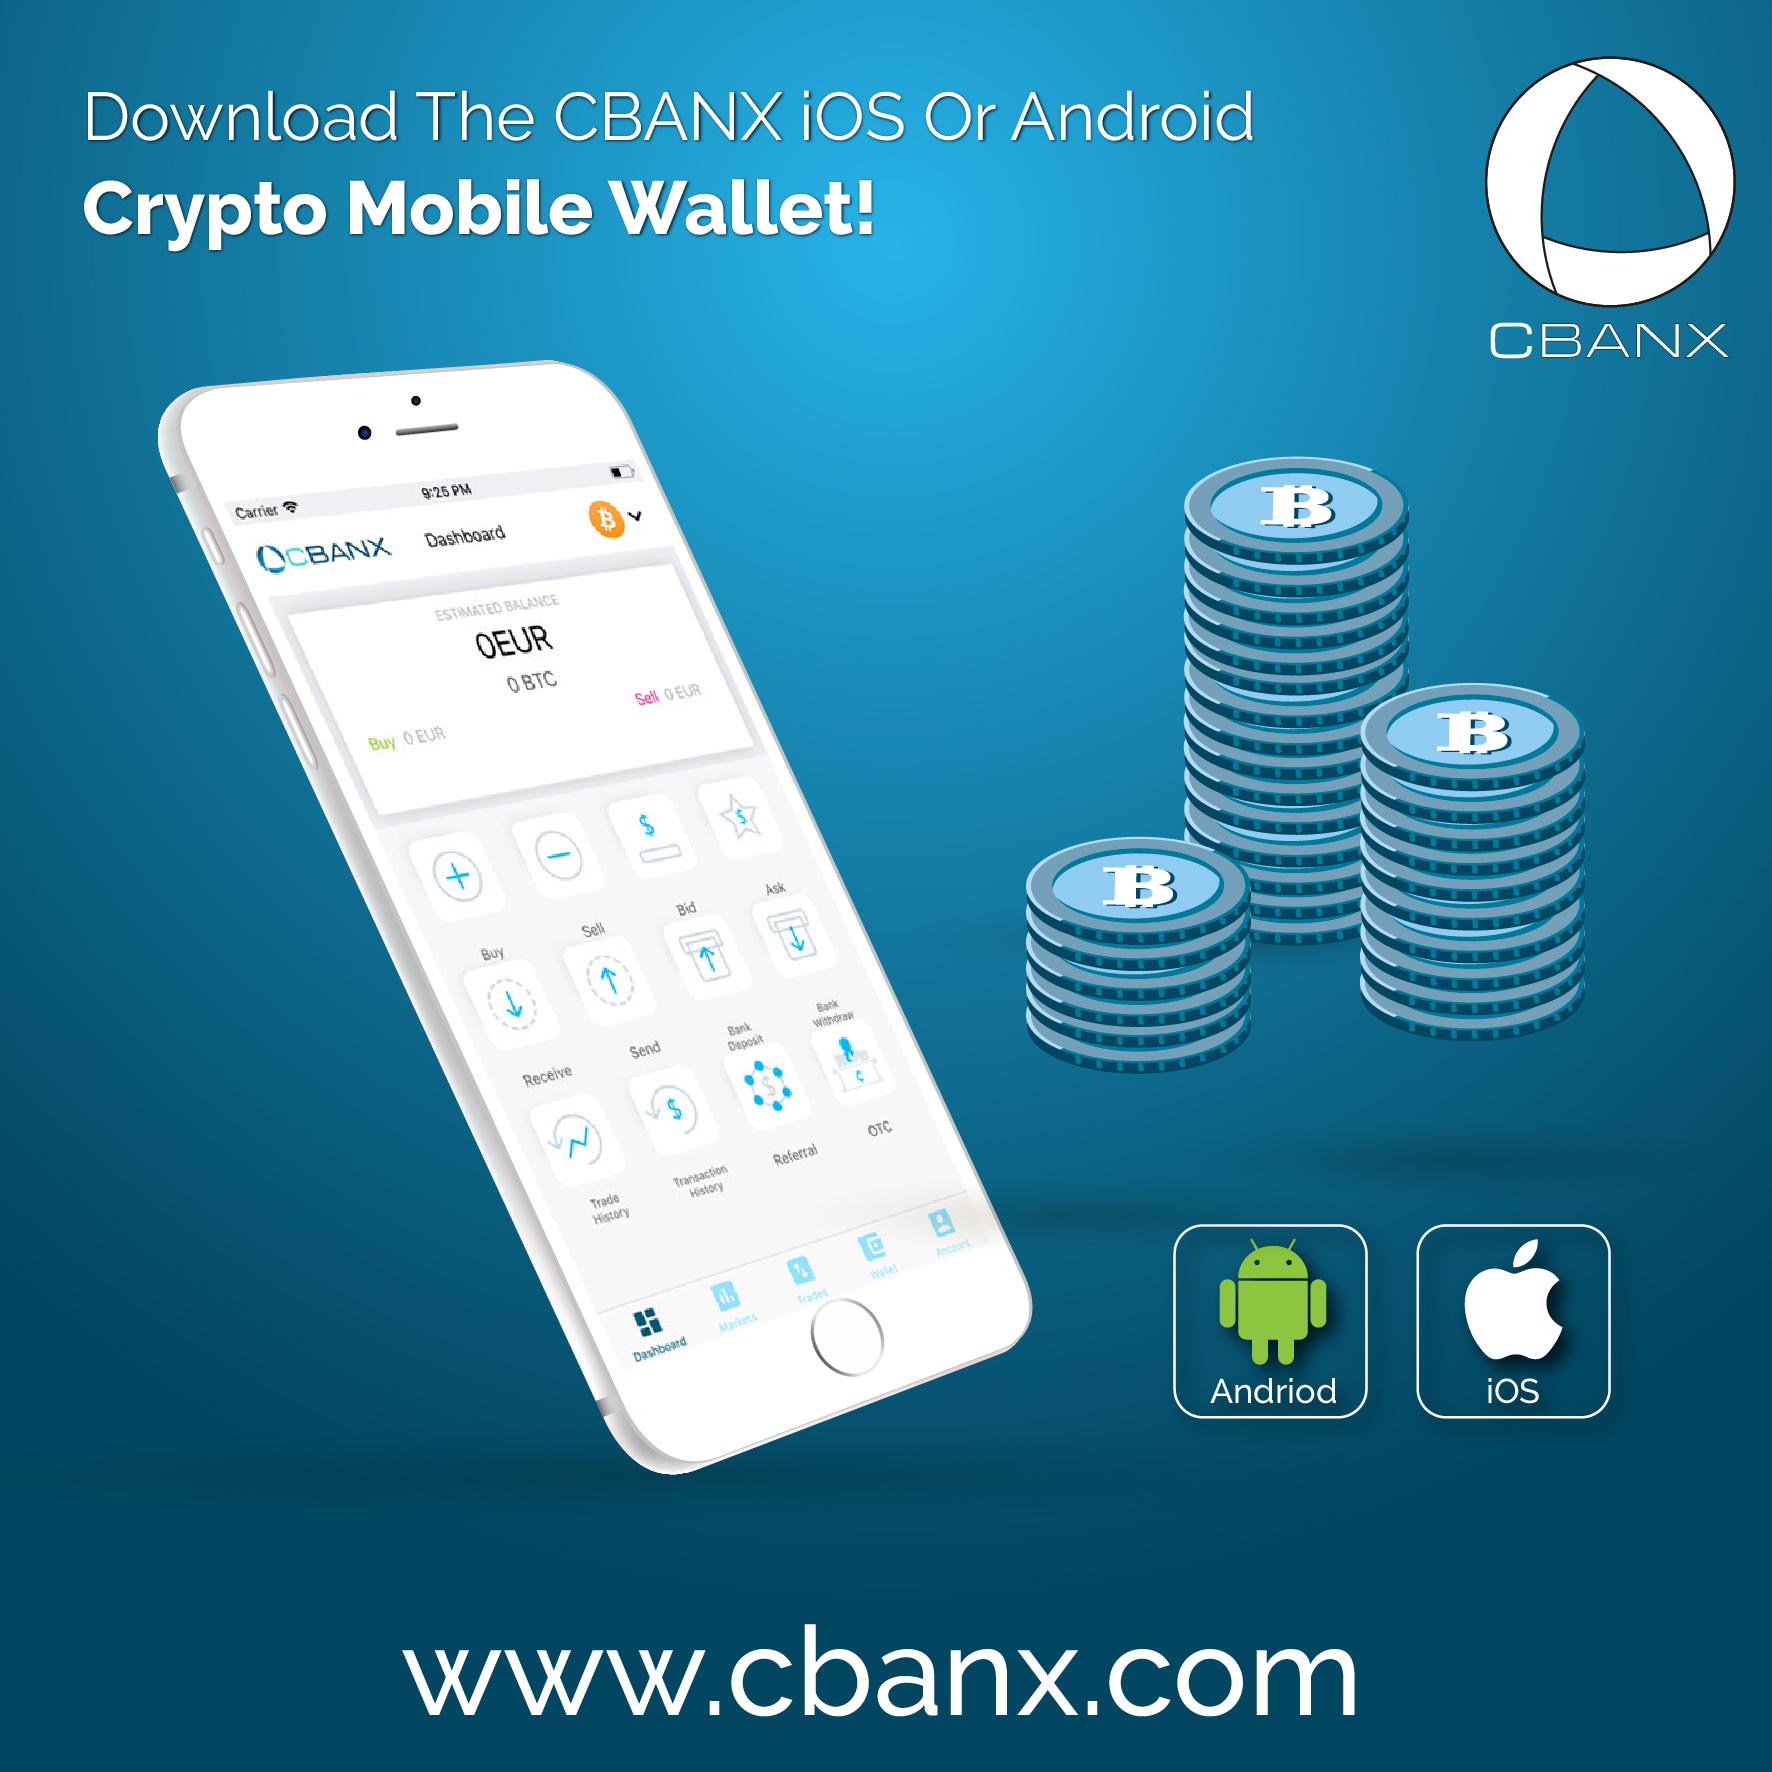 Download The CBANX iOS Or Android Crypto Mobile Wallet!